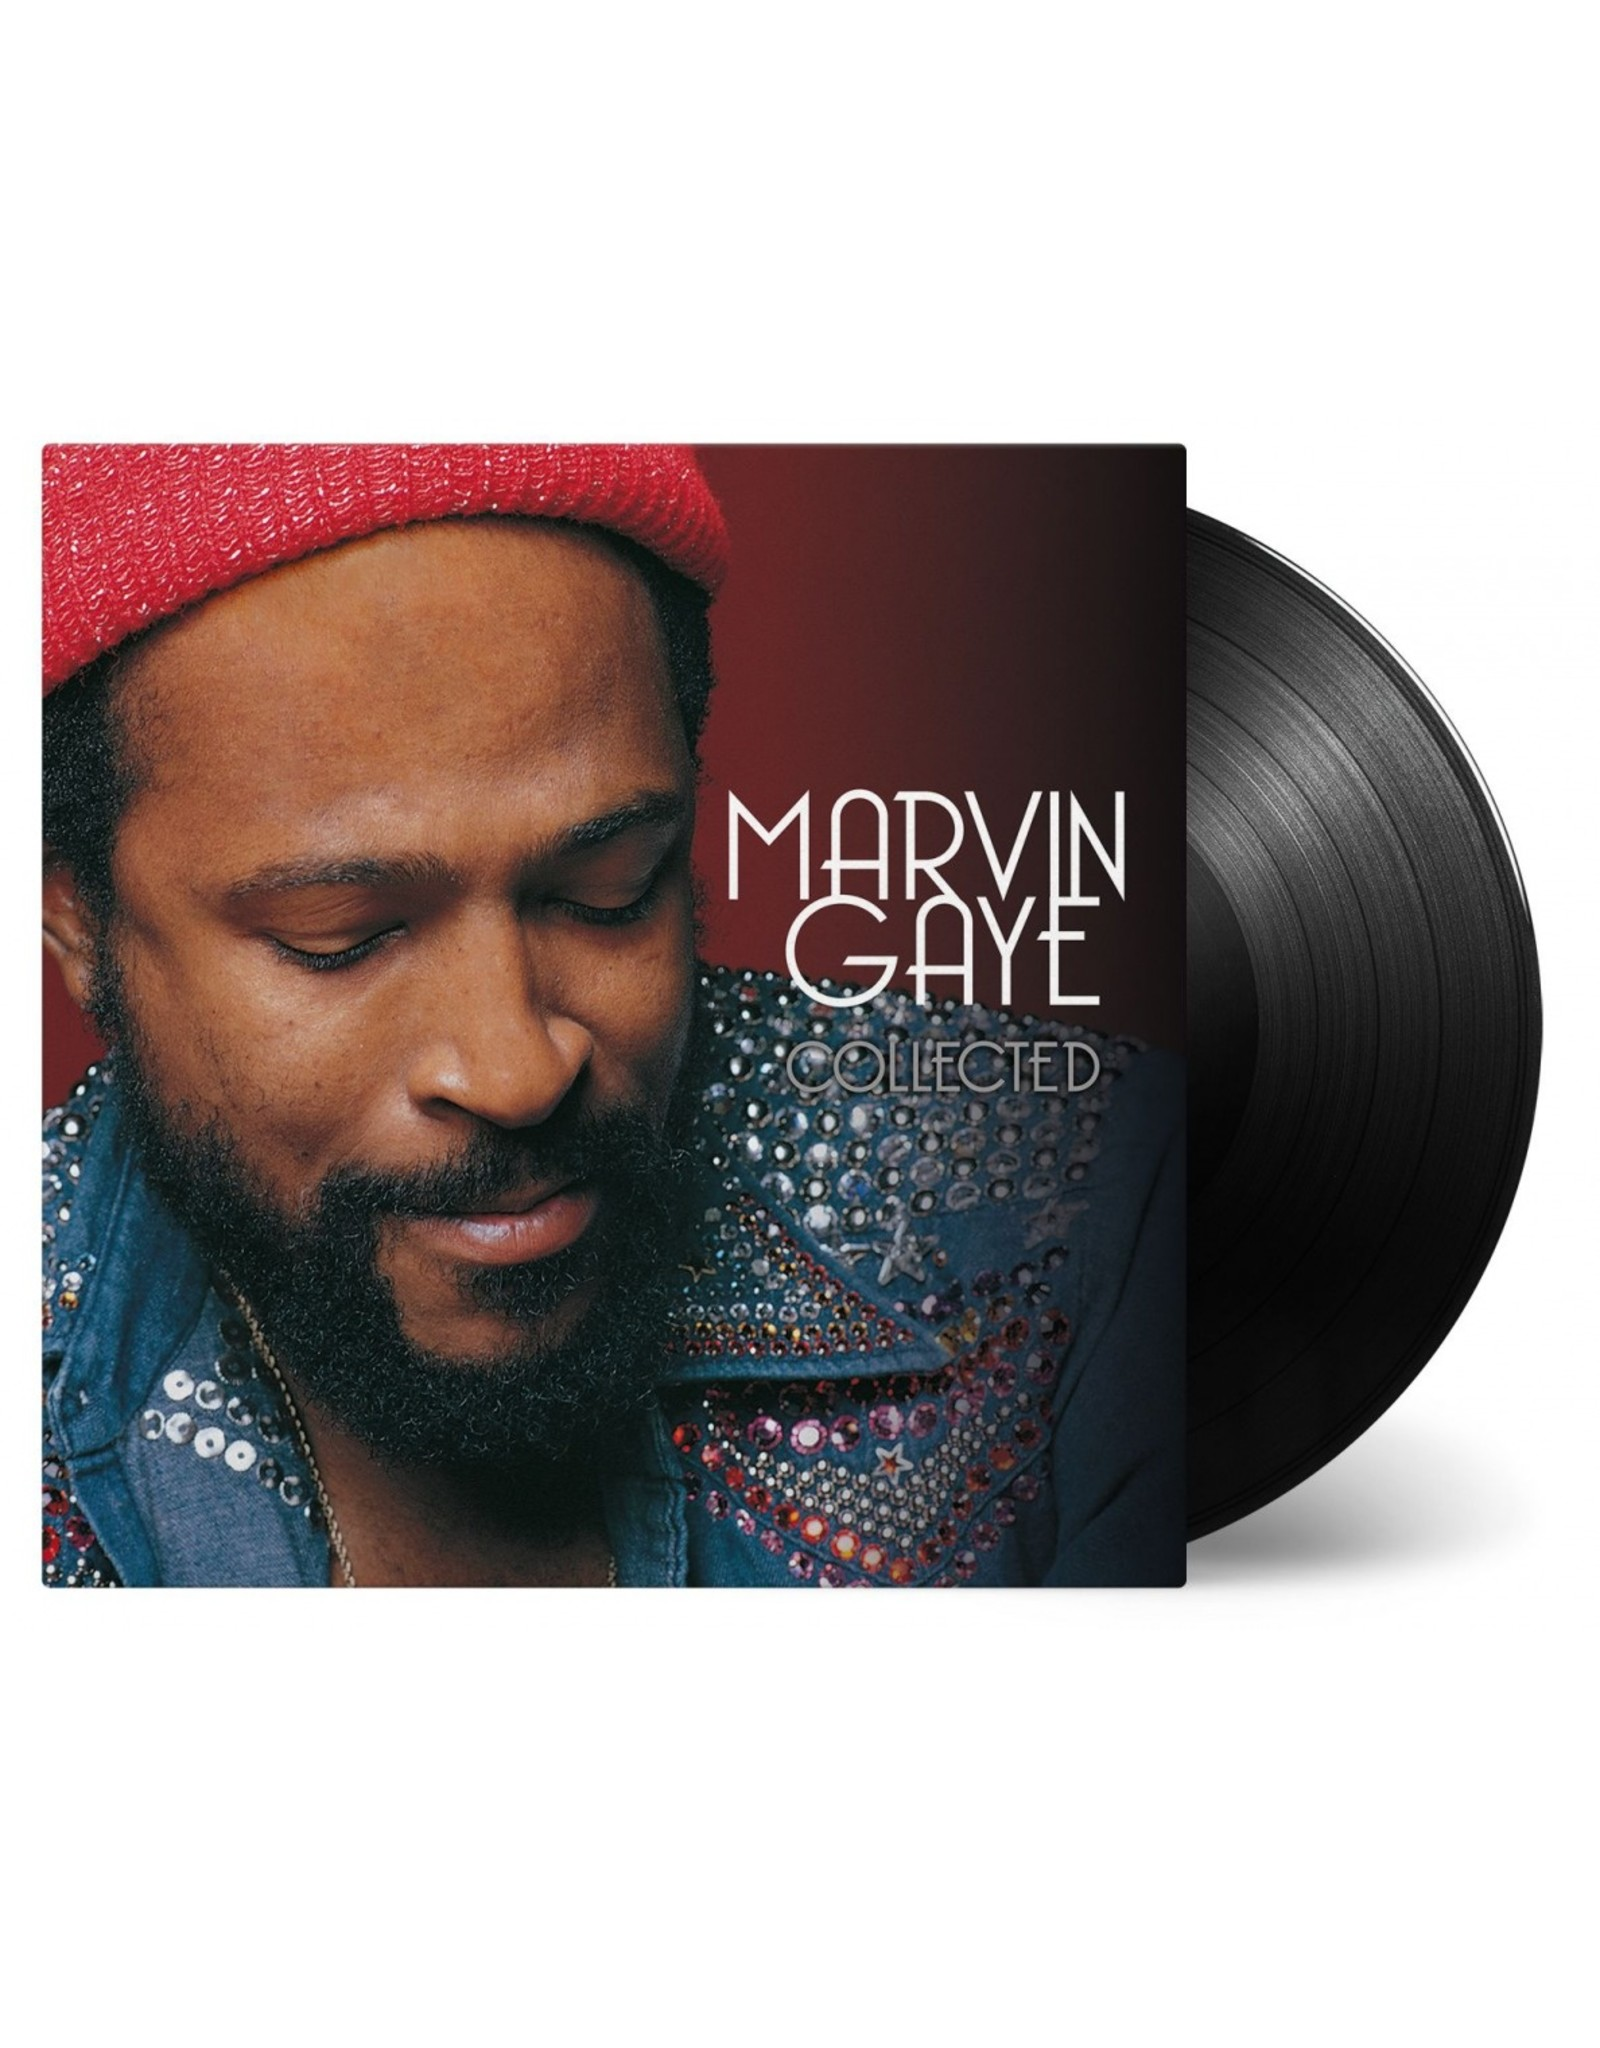 Marvin Gaye - Collected (Music On Vinyl)